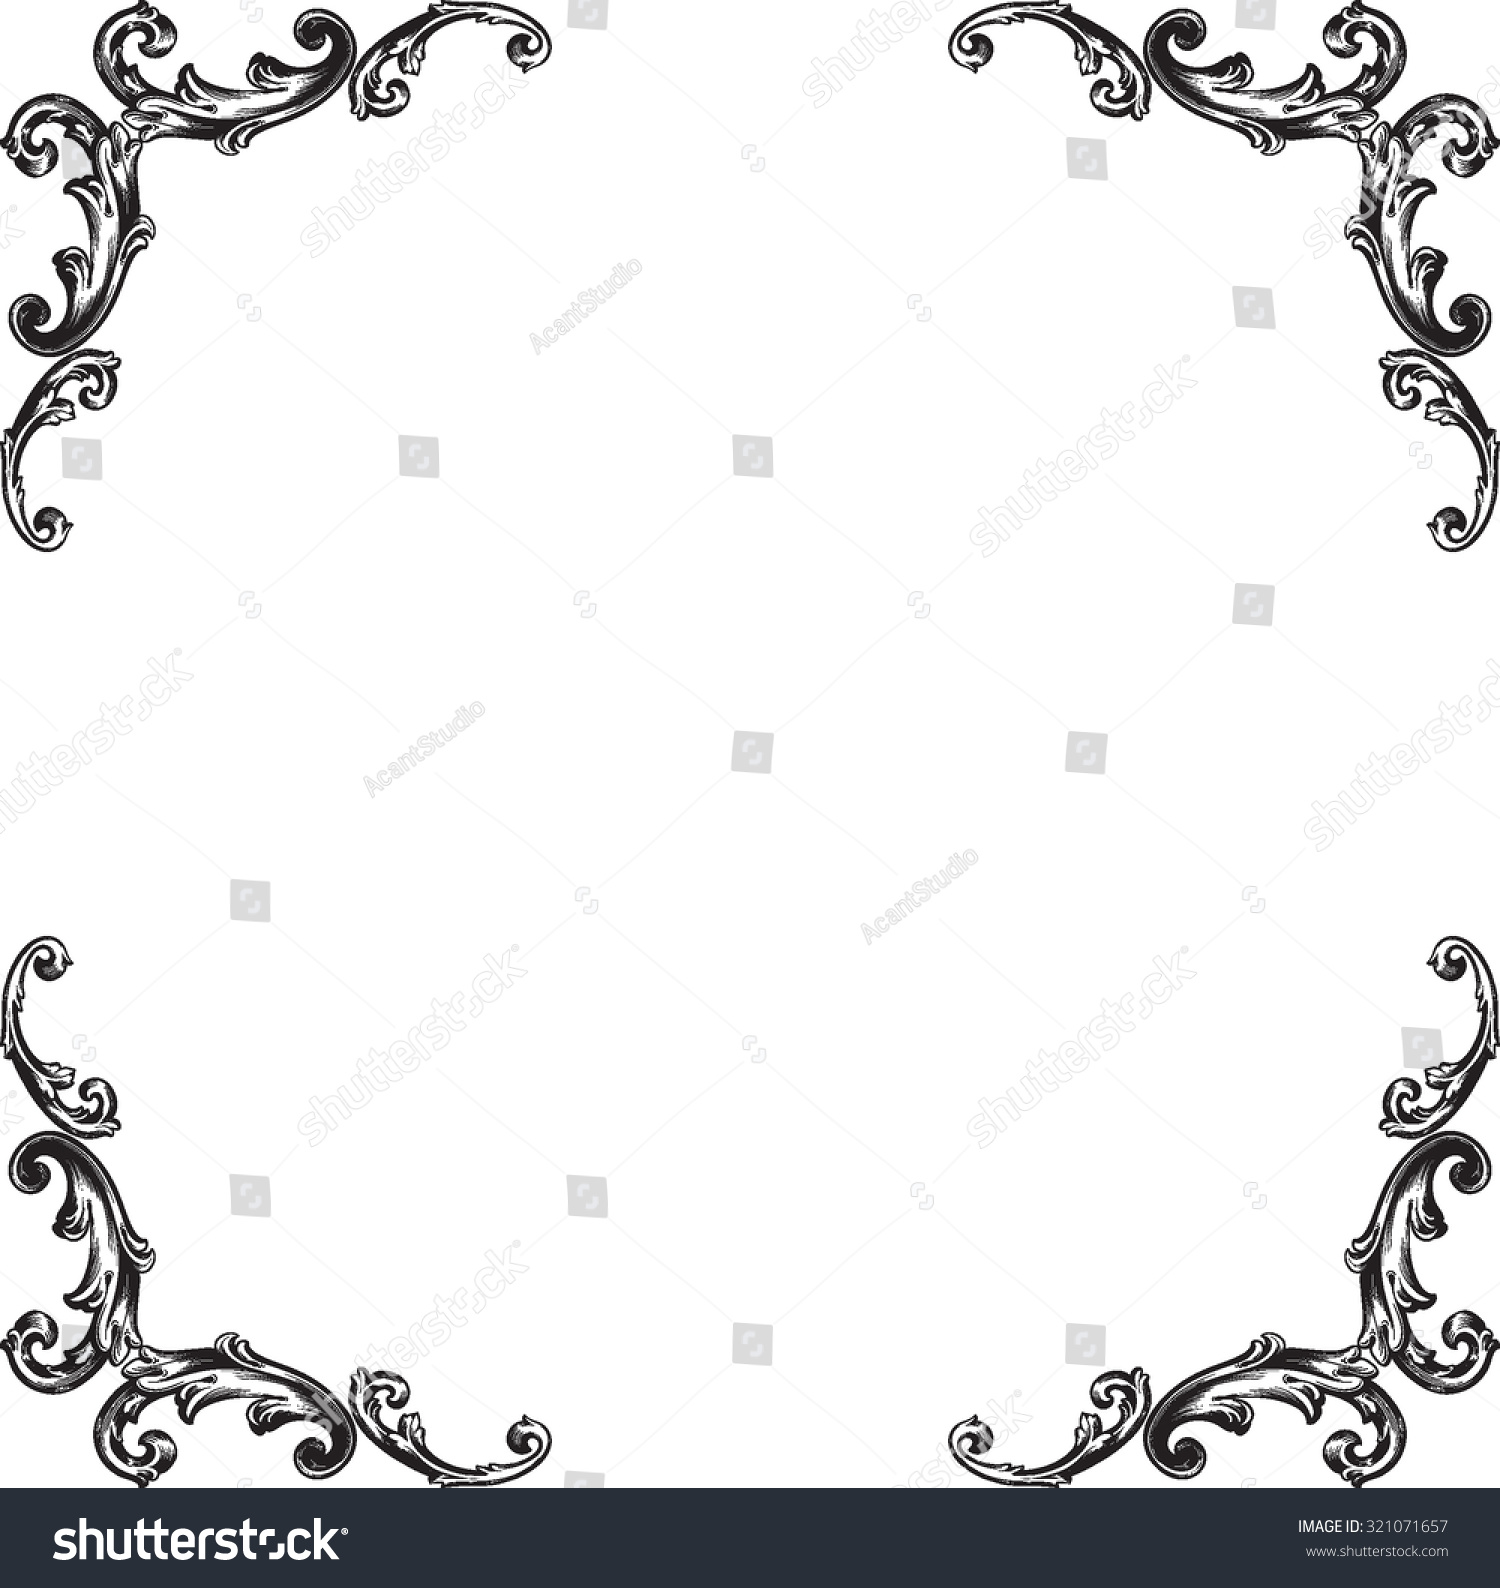 Decorative Black Flower Border Stock Image: Decorative Vintage Borders Frames Page Decoration Stock